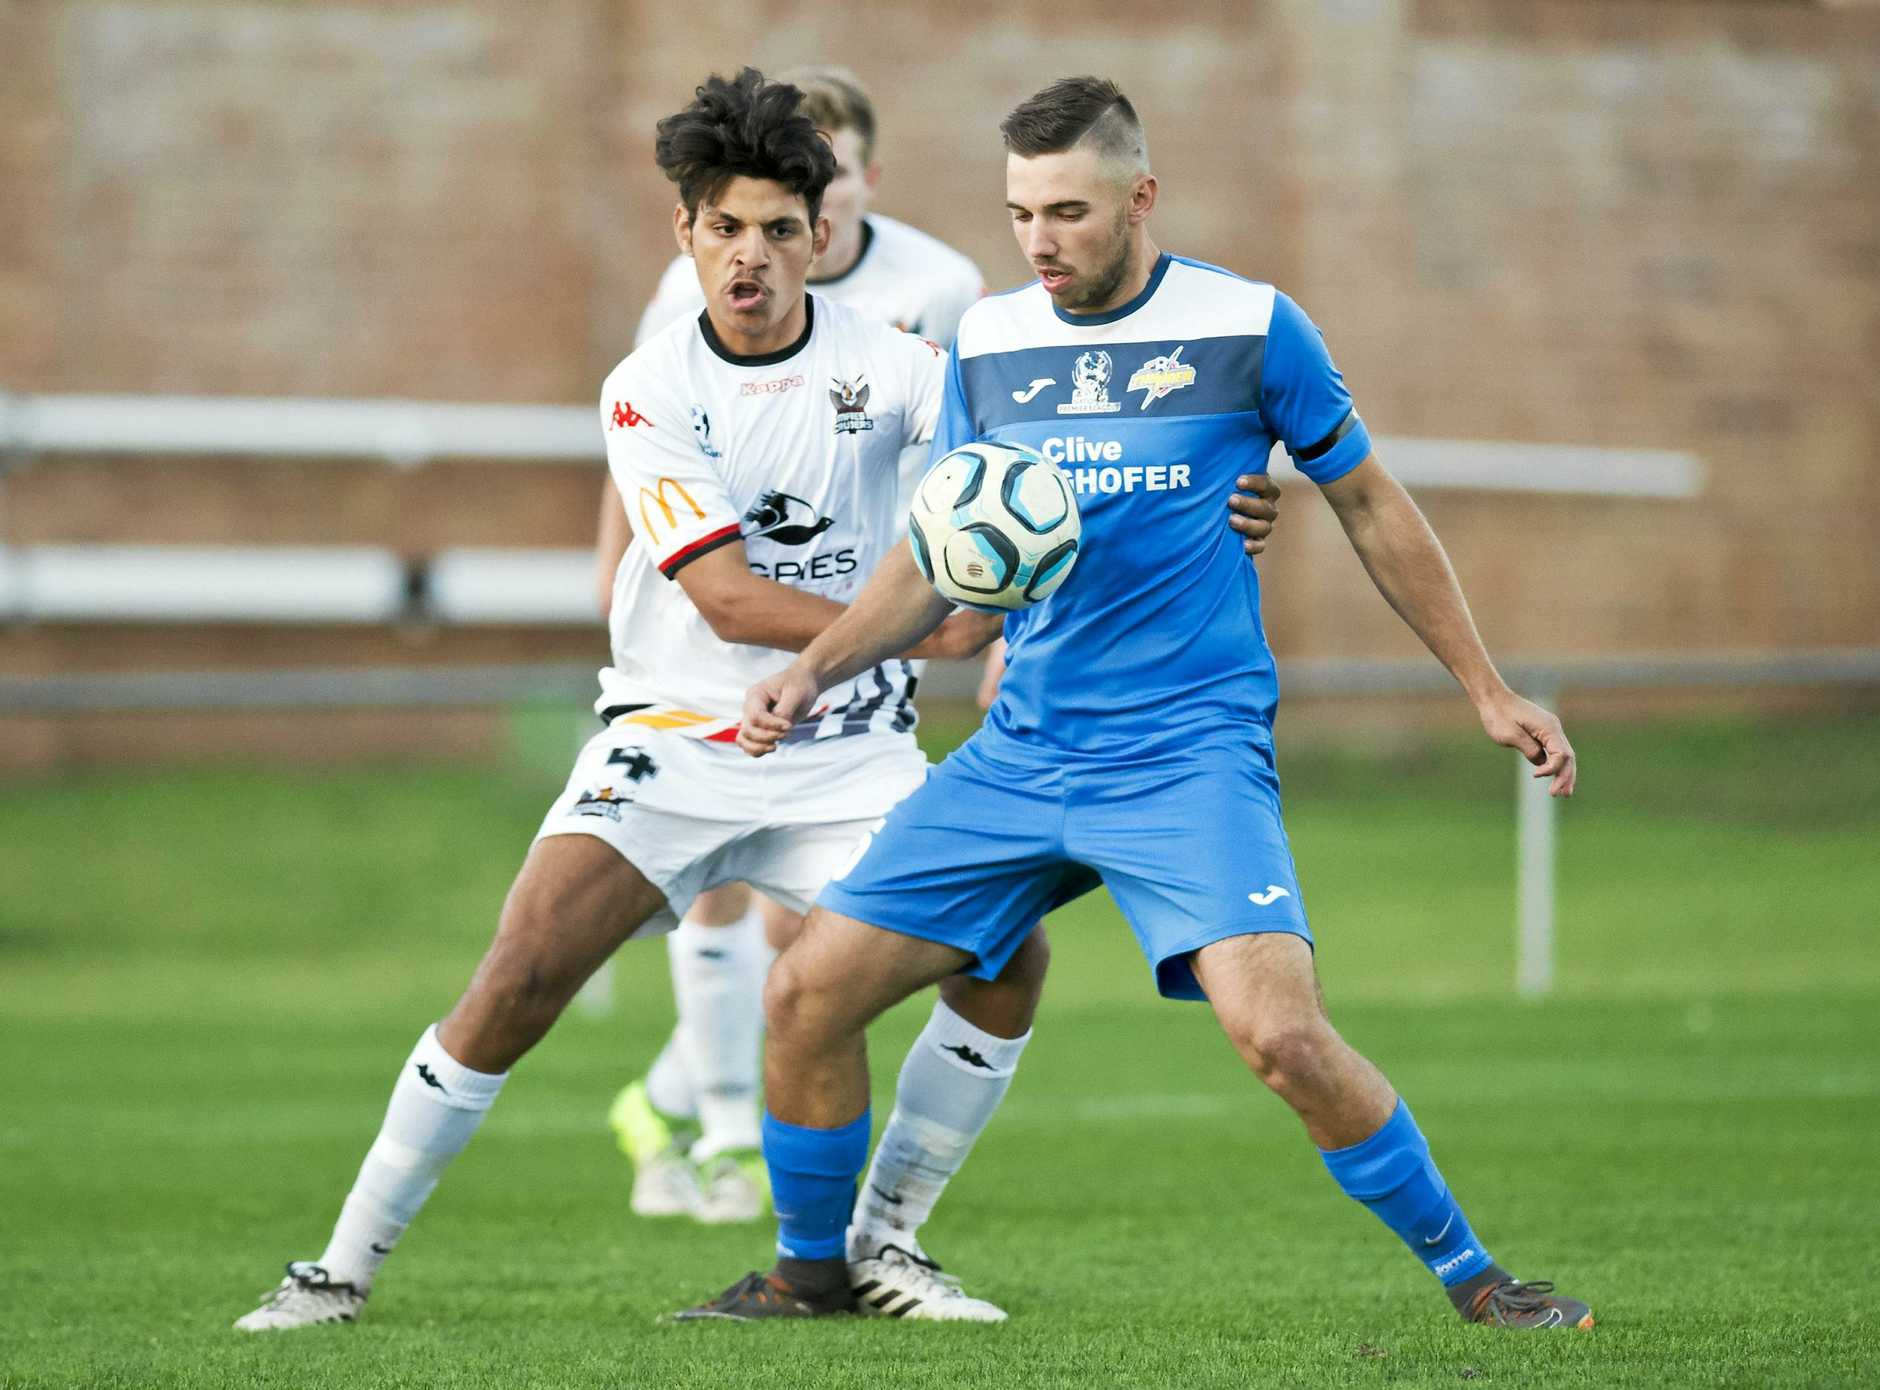 DOUBLE DELIGHT: South West Queensland Thunder striker Anthony Grant (right) scored a double in his side's 2-1 win over Moreton Bay United last weekend.